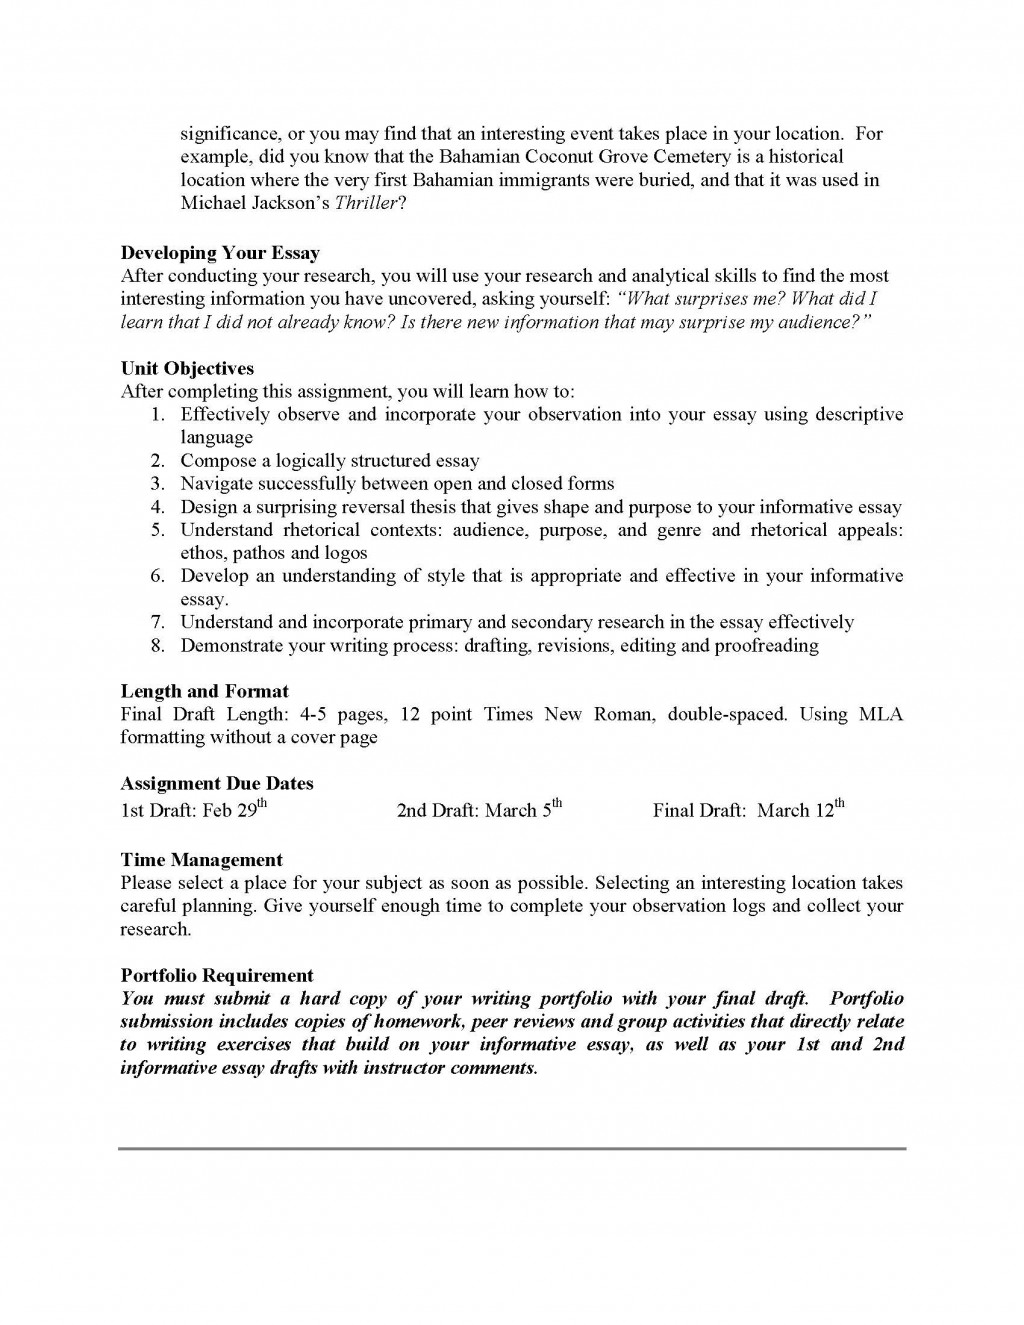 026 Informative Essay Unit Assignment Page 2 How To Write An Explanatory Singular Expository Middle School Introduction Large